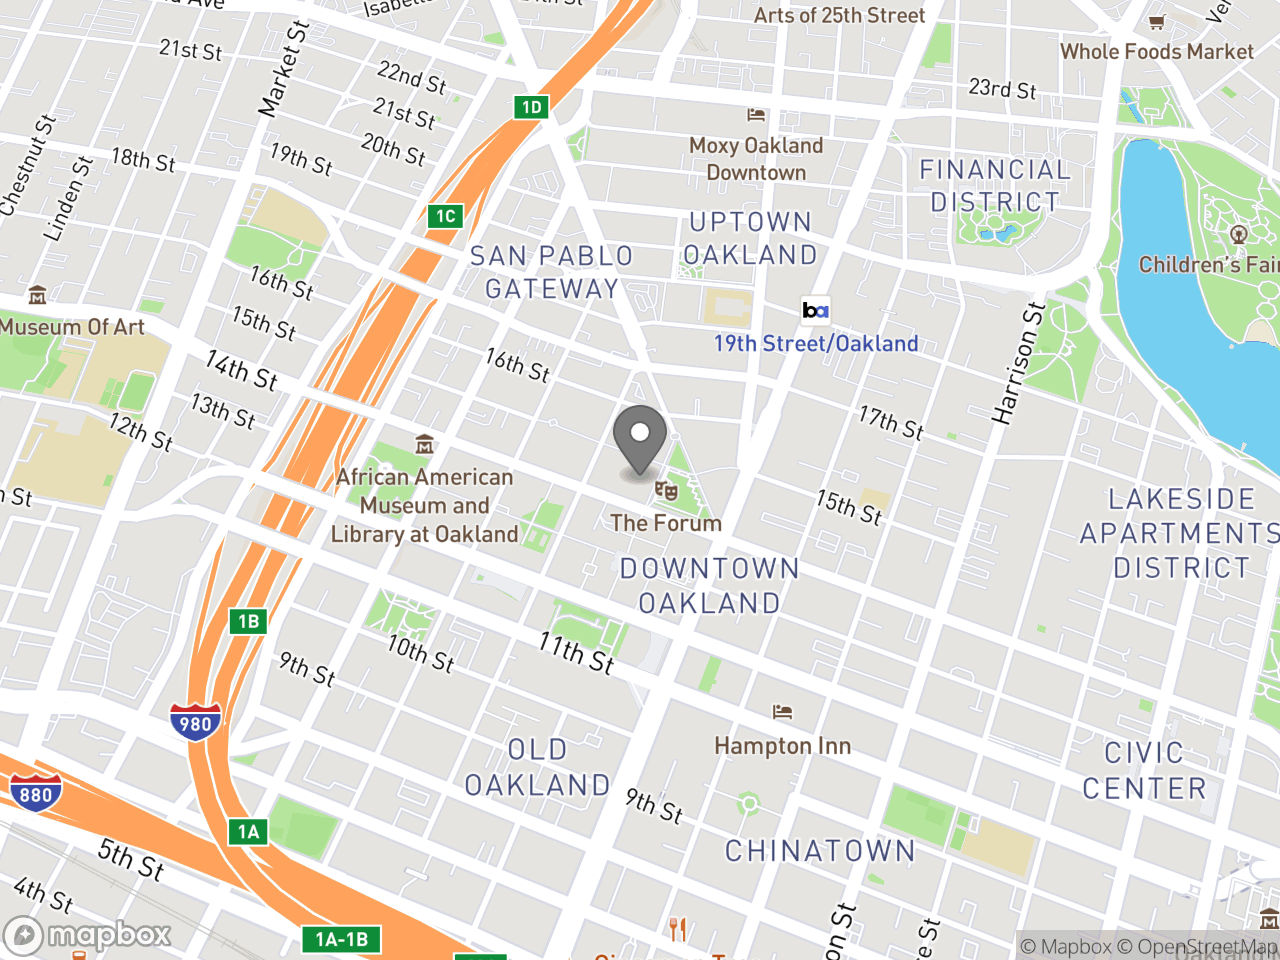 Map location for Bicyclist and Pedestrian Advisory Commission (BPAC) Meeting, December 20, 2018, located at 1 Frank H Ogawa Plaza in Oakland, CA 94612